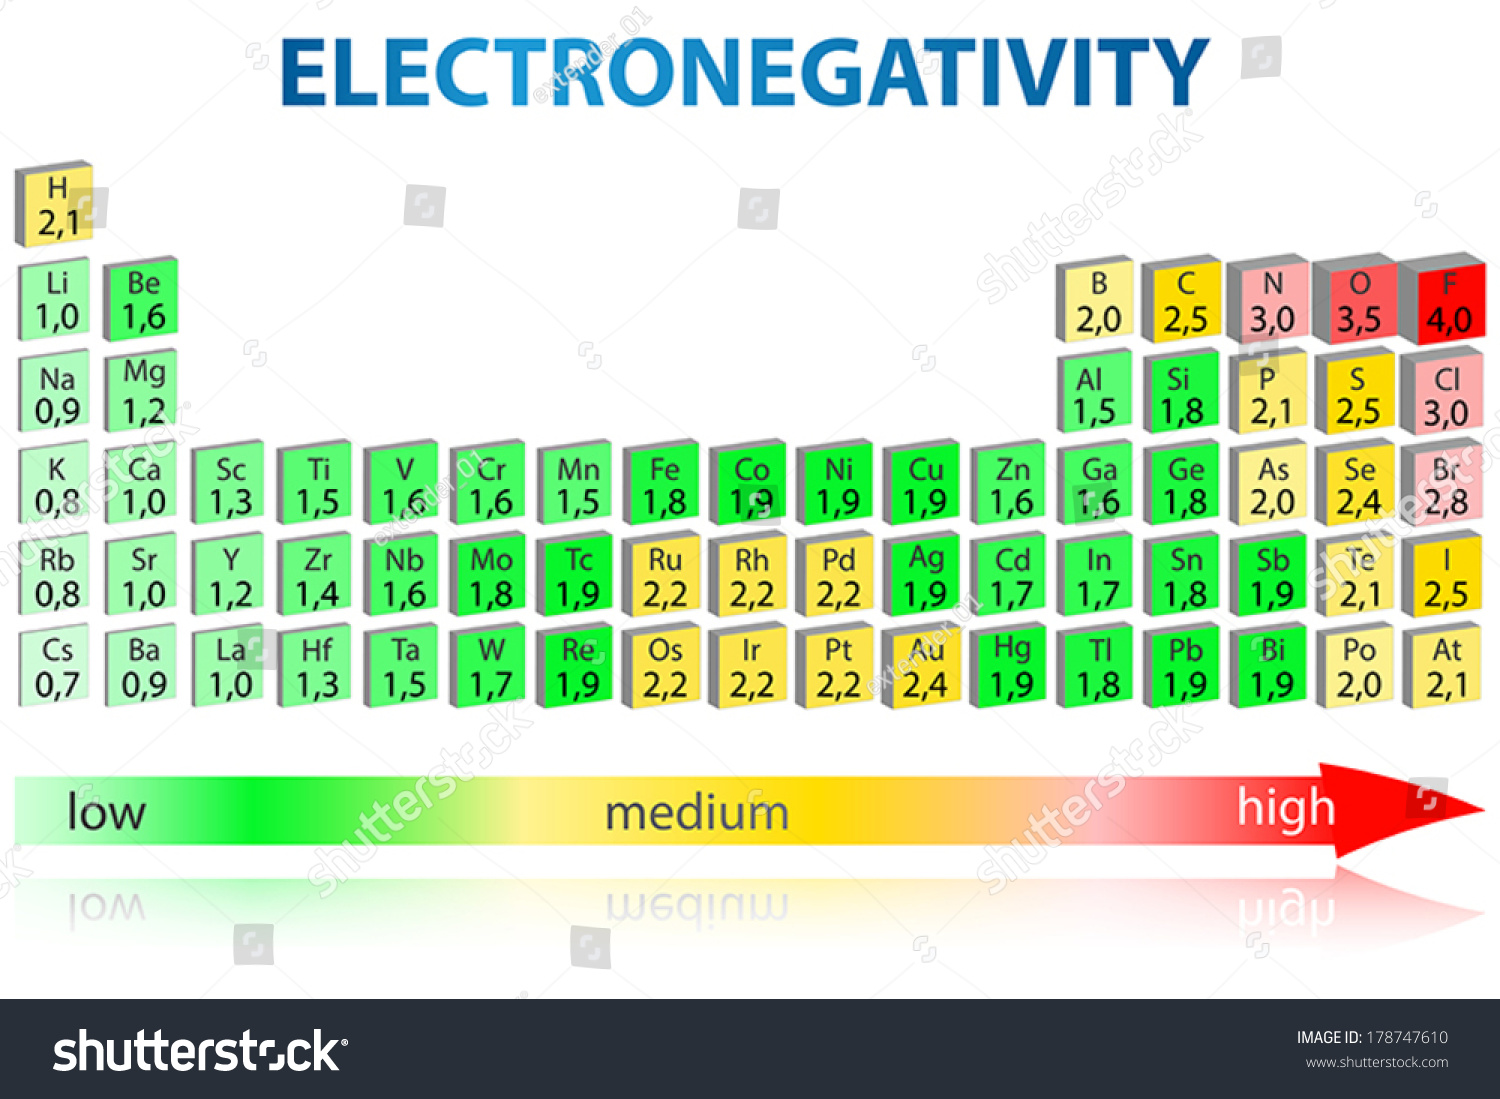 Periodic table elements electronegativity values stock vector periodic table of elements with electronegativity values gamestrikefo Images